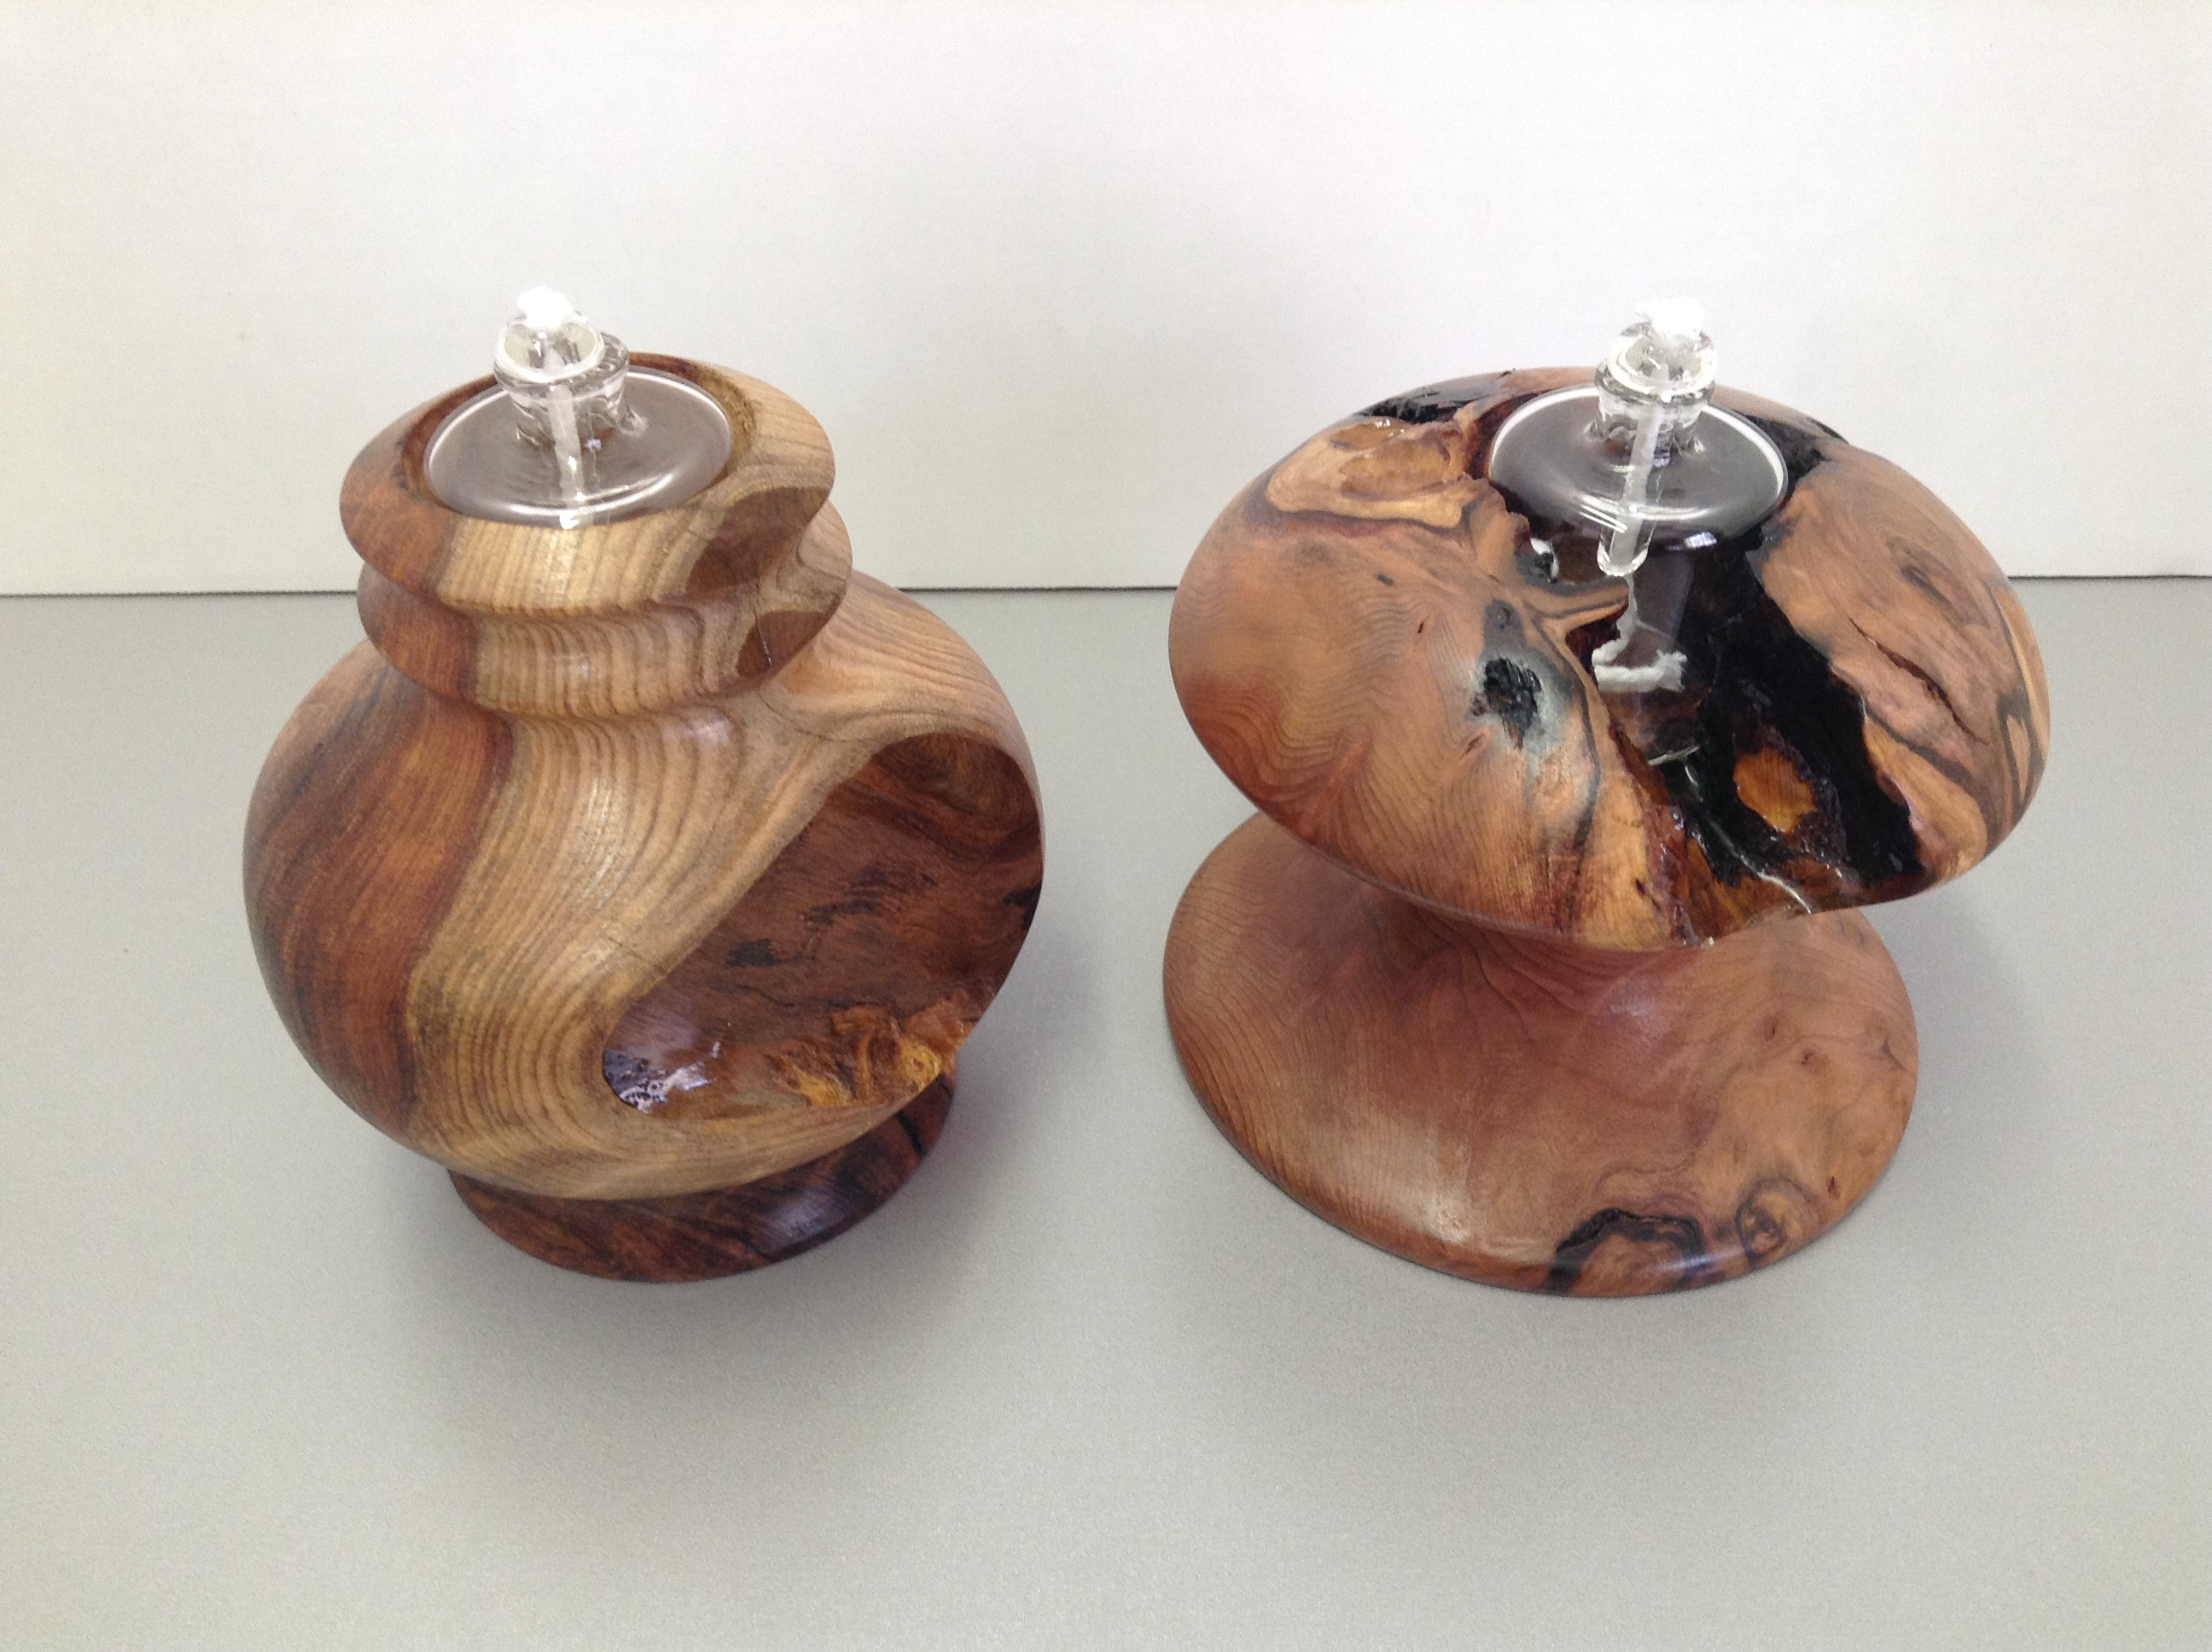 Redwood Burl Tea Lights